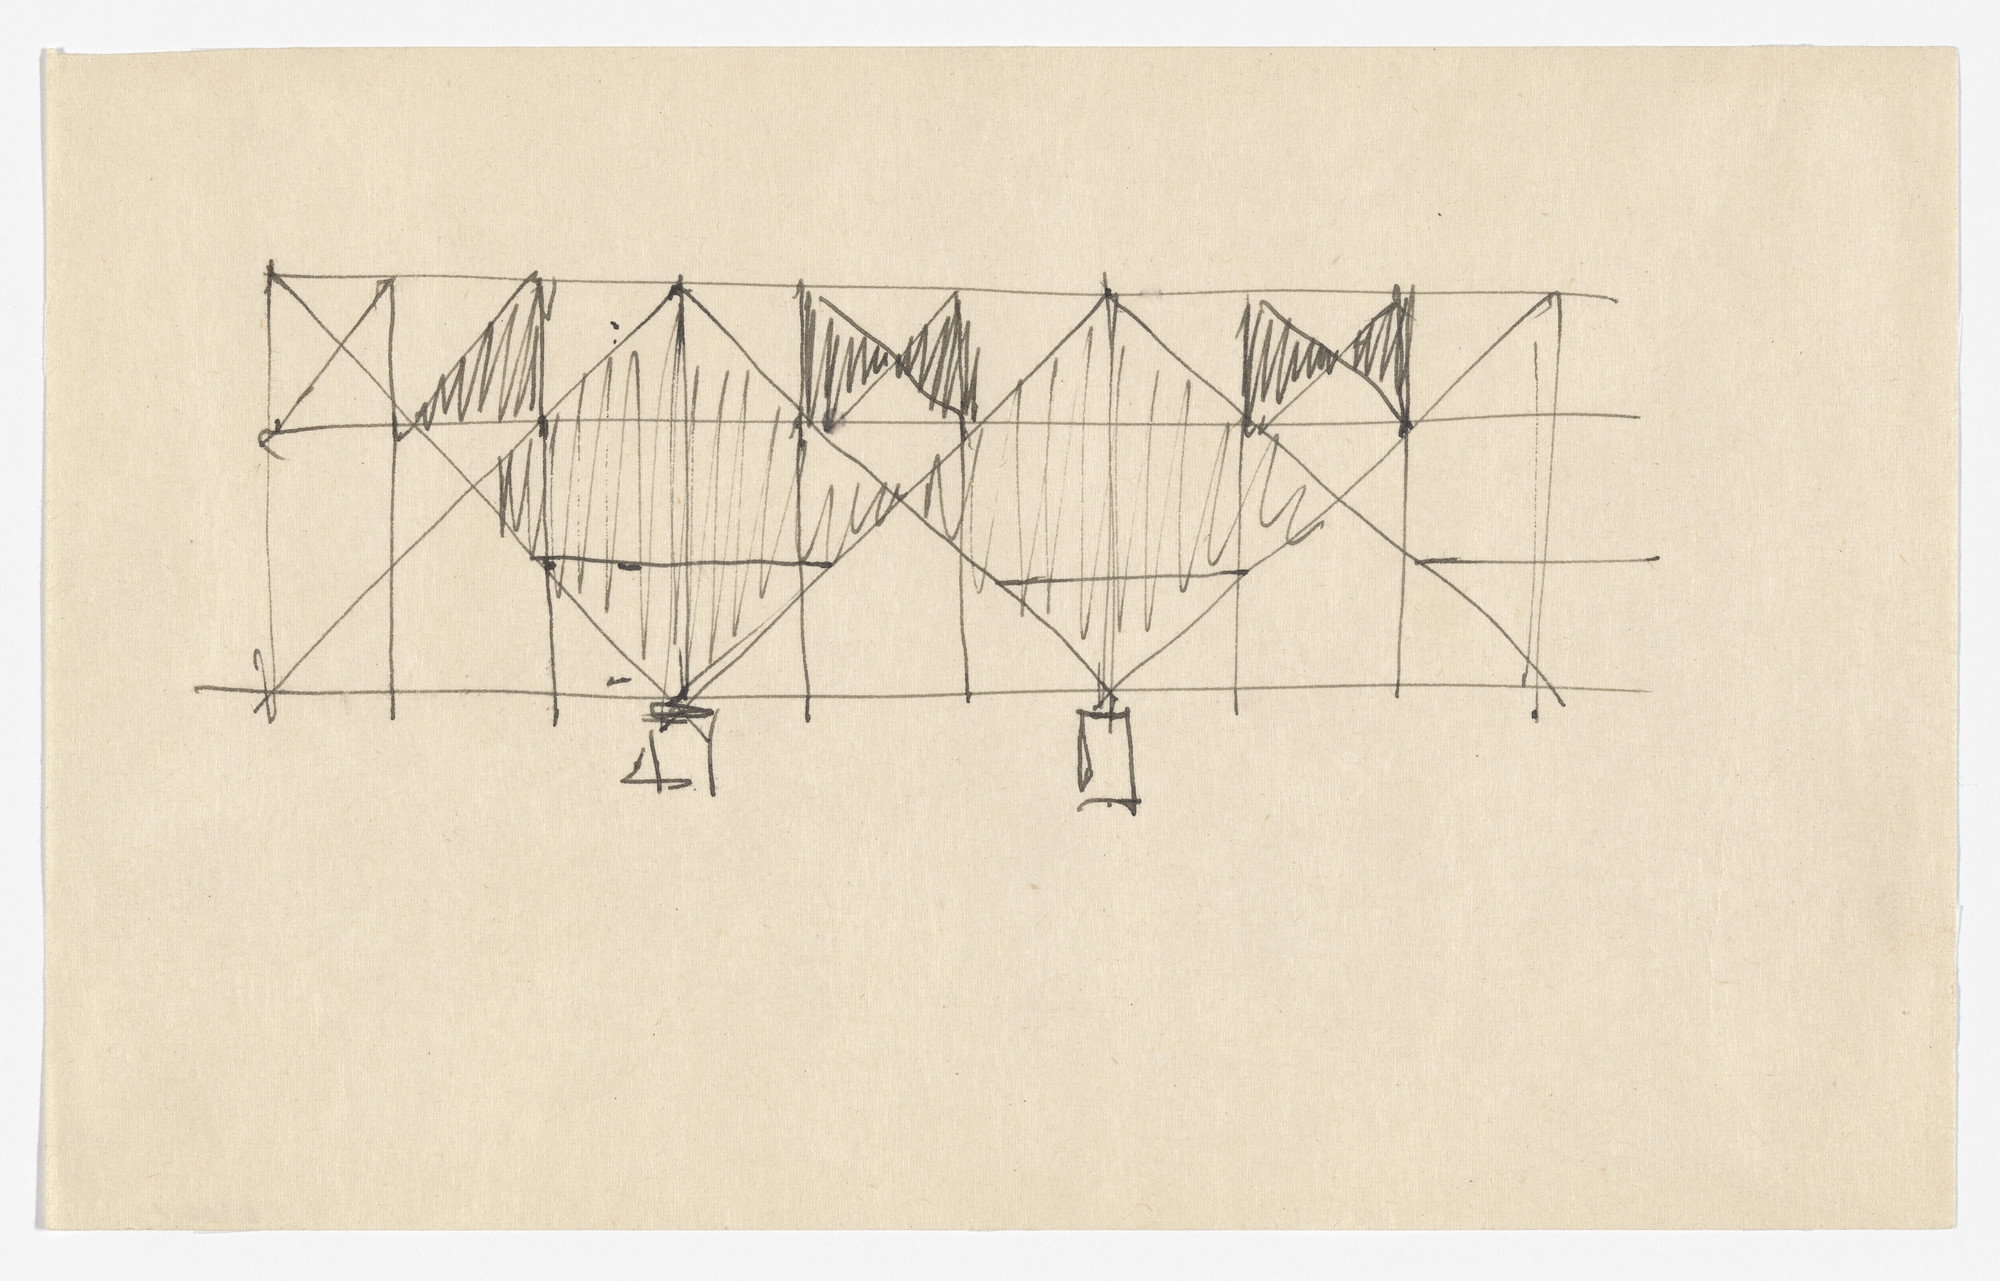 Ludwig Mies van der Rohe. Convention Hall Project, Chicago, IL (Structural steel system. Elevations). 1954